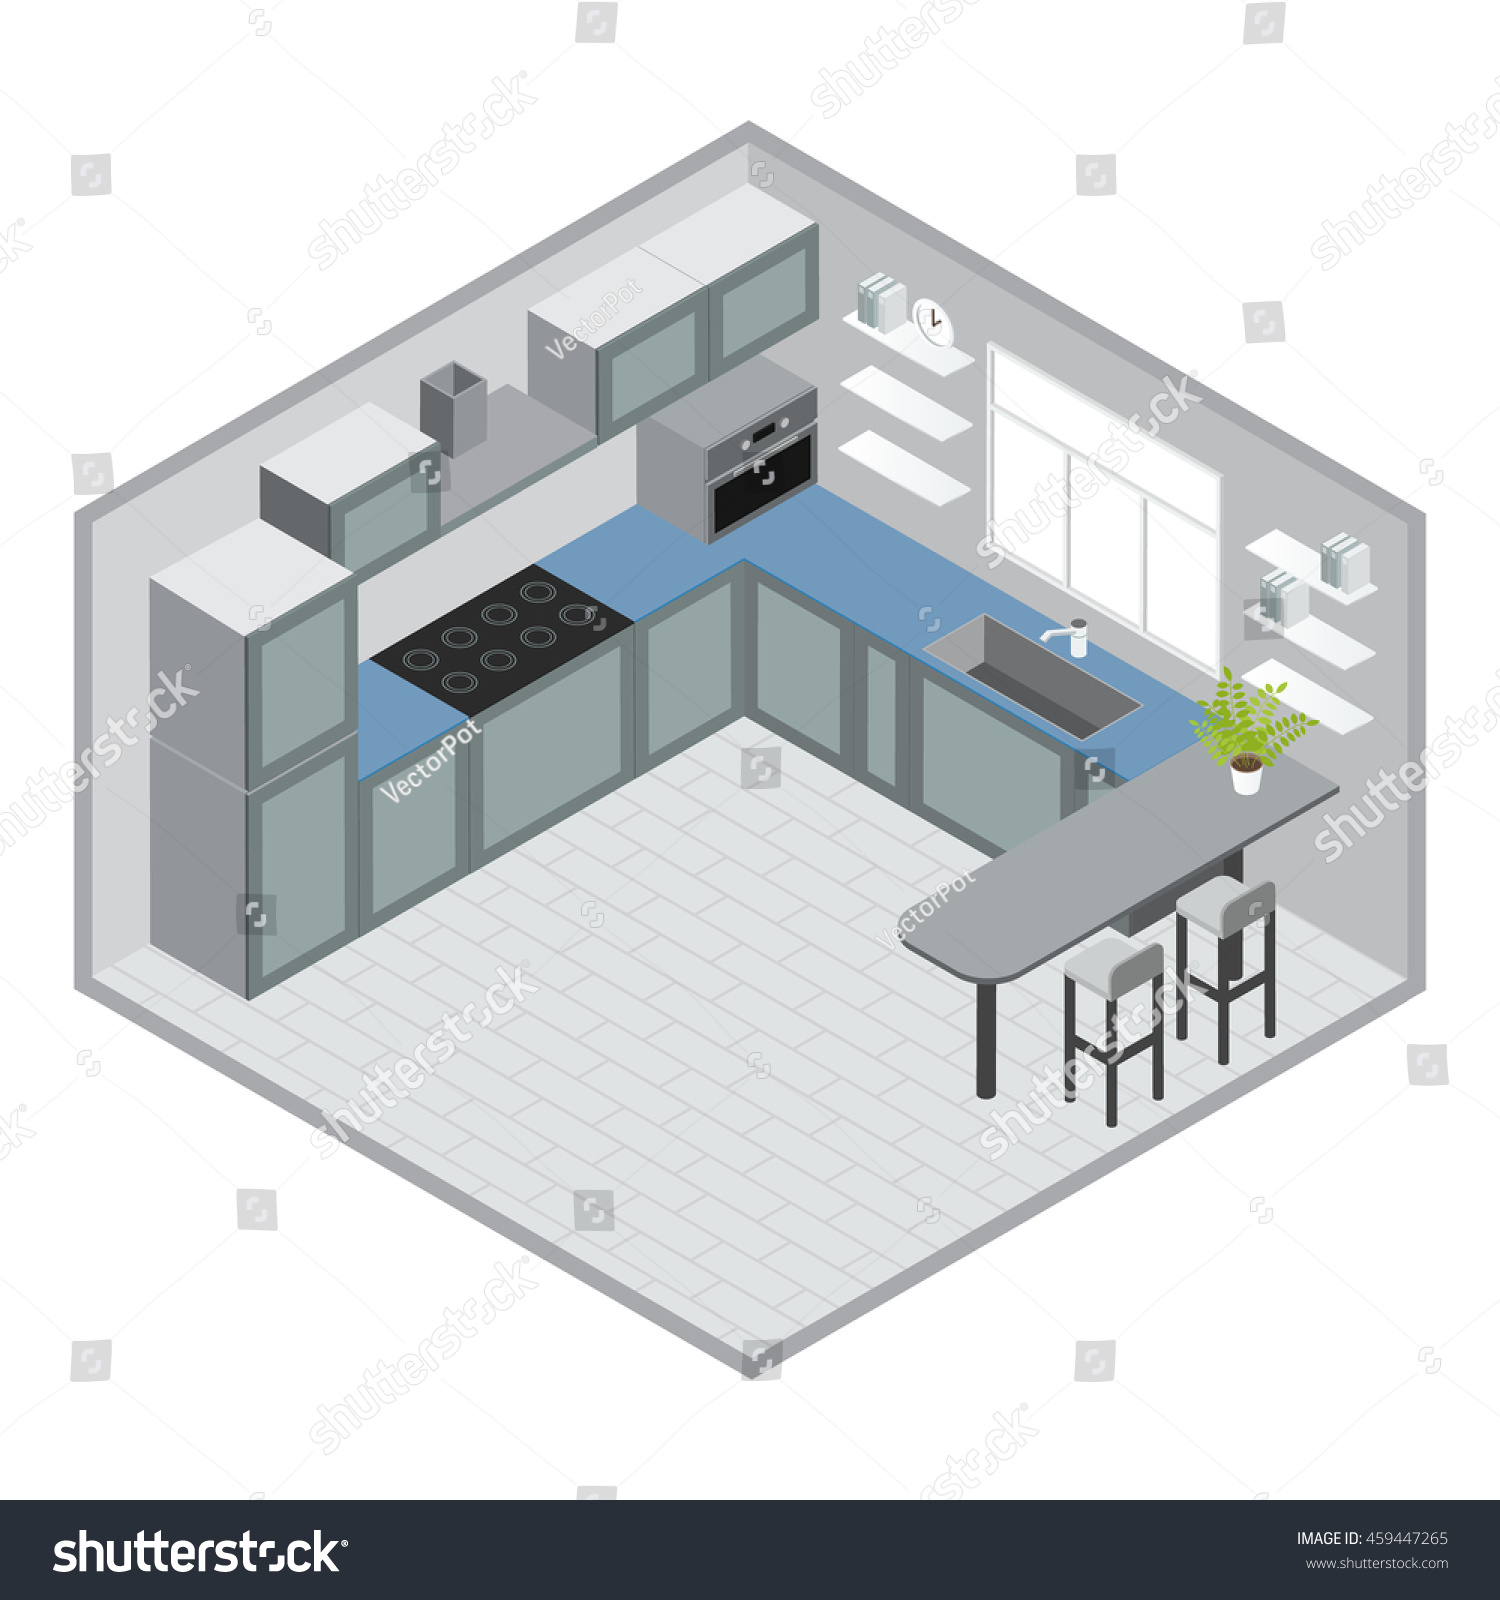 3d kitchen cabinet design free download with Isometric Kitchen Design Grey Blue Cabi S 459447265 on 2020design further Tv Wall And Tv Cabi  Ideas further 2020design as well Measuringguide likewise Interior Design.